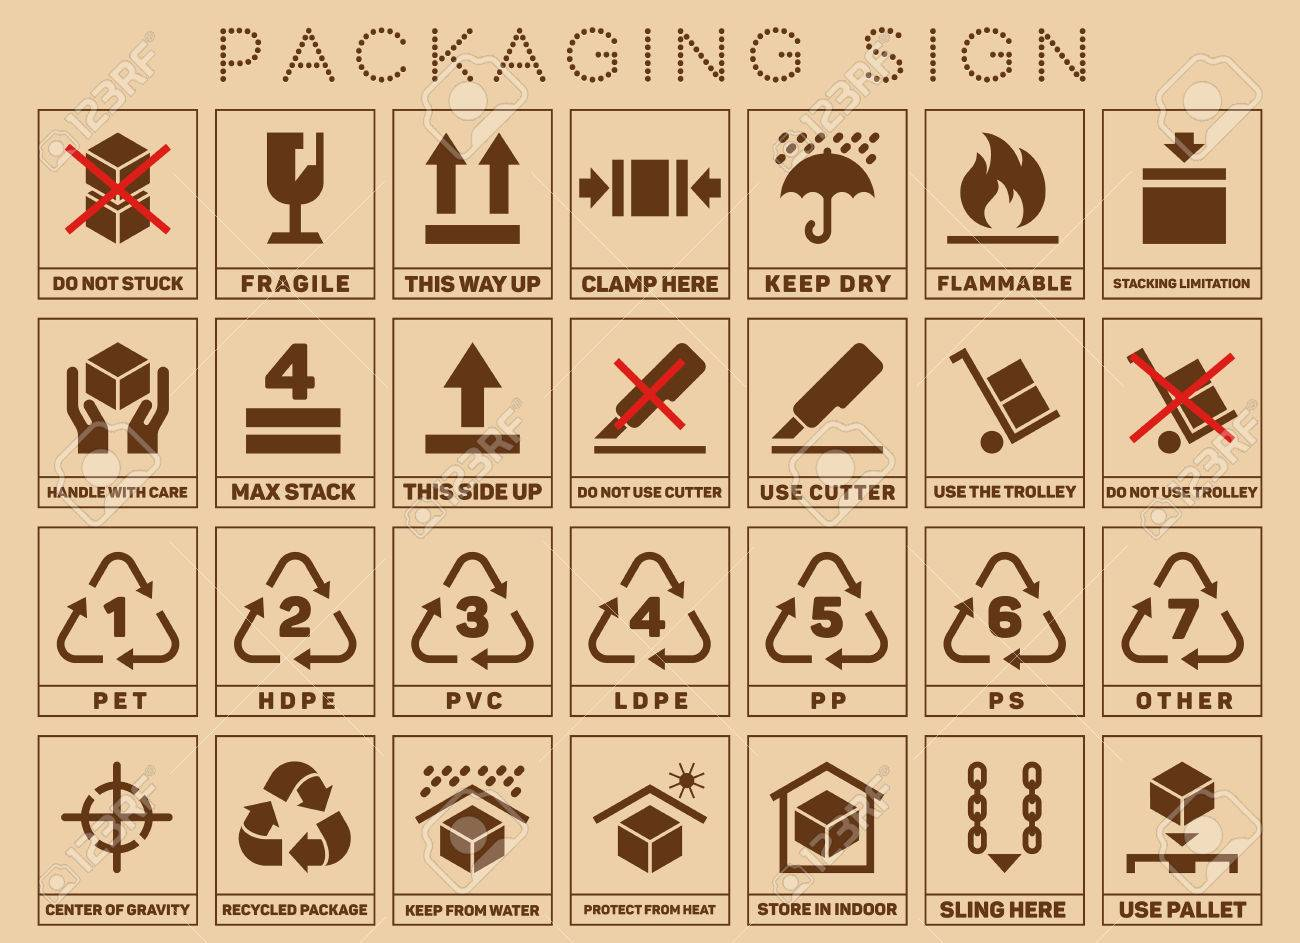 Packaging signs or packaging symbols  Packaging symbol standard